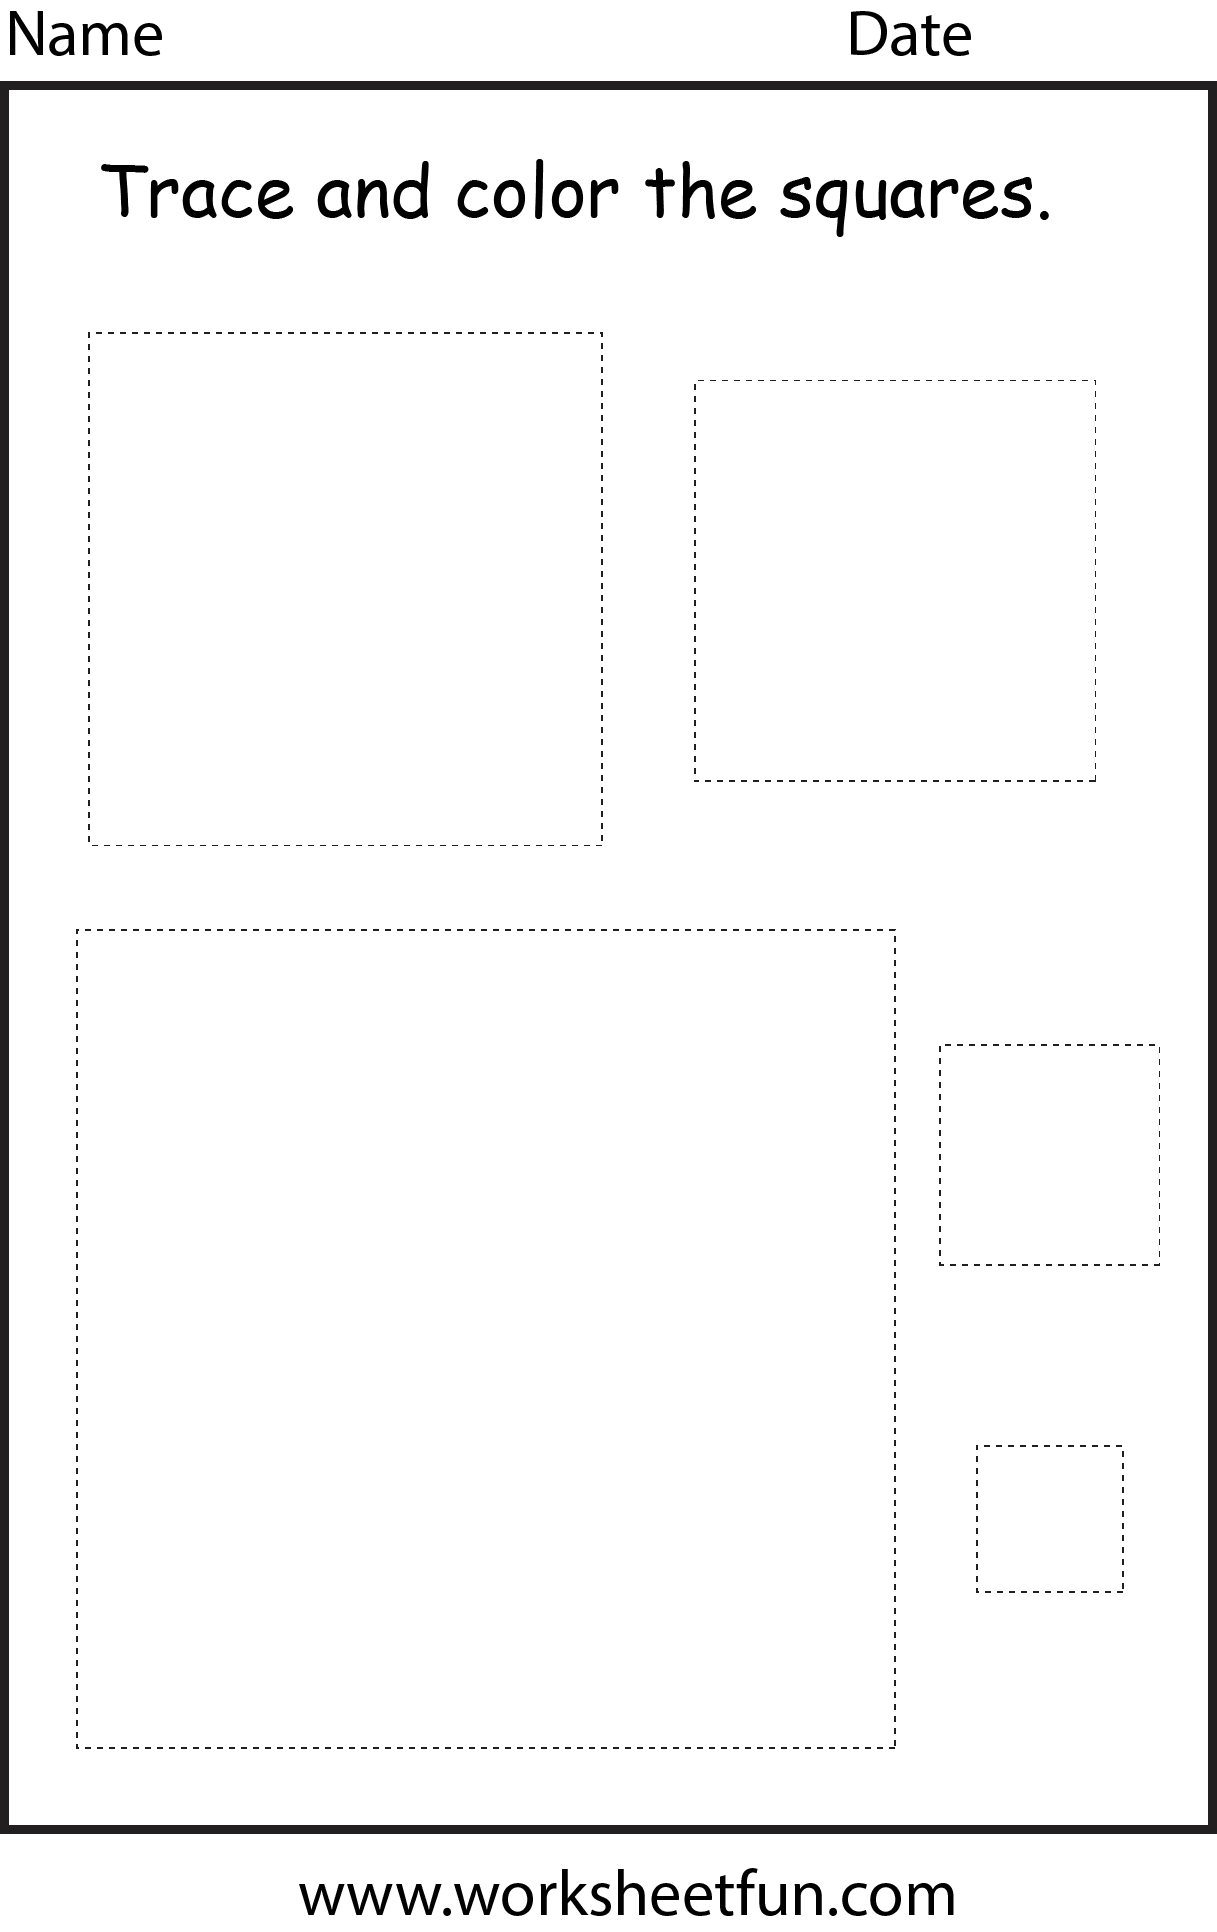 Shape Square 1 Worksheet Free Printable Worksheets